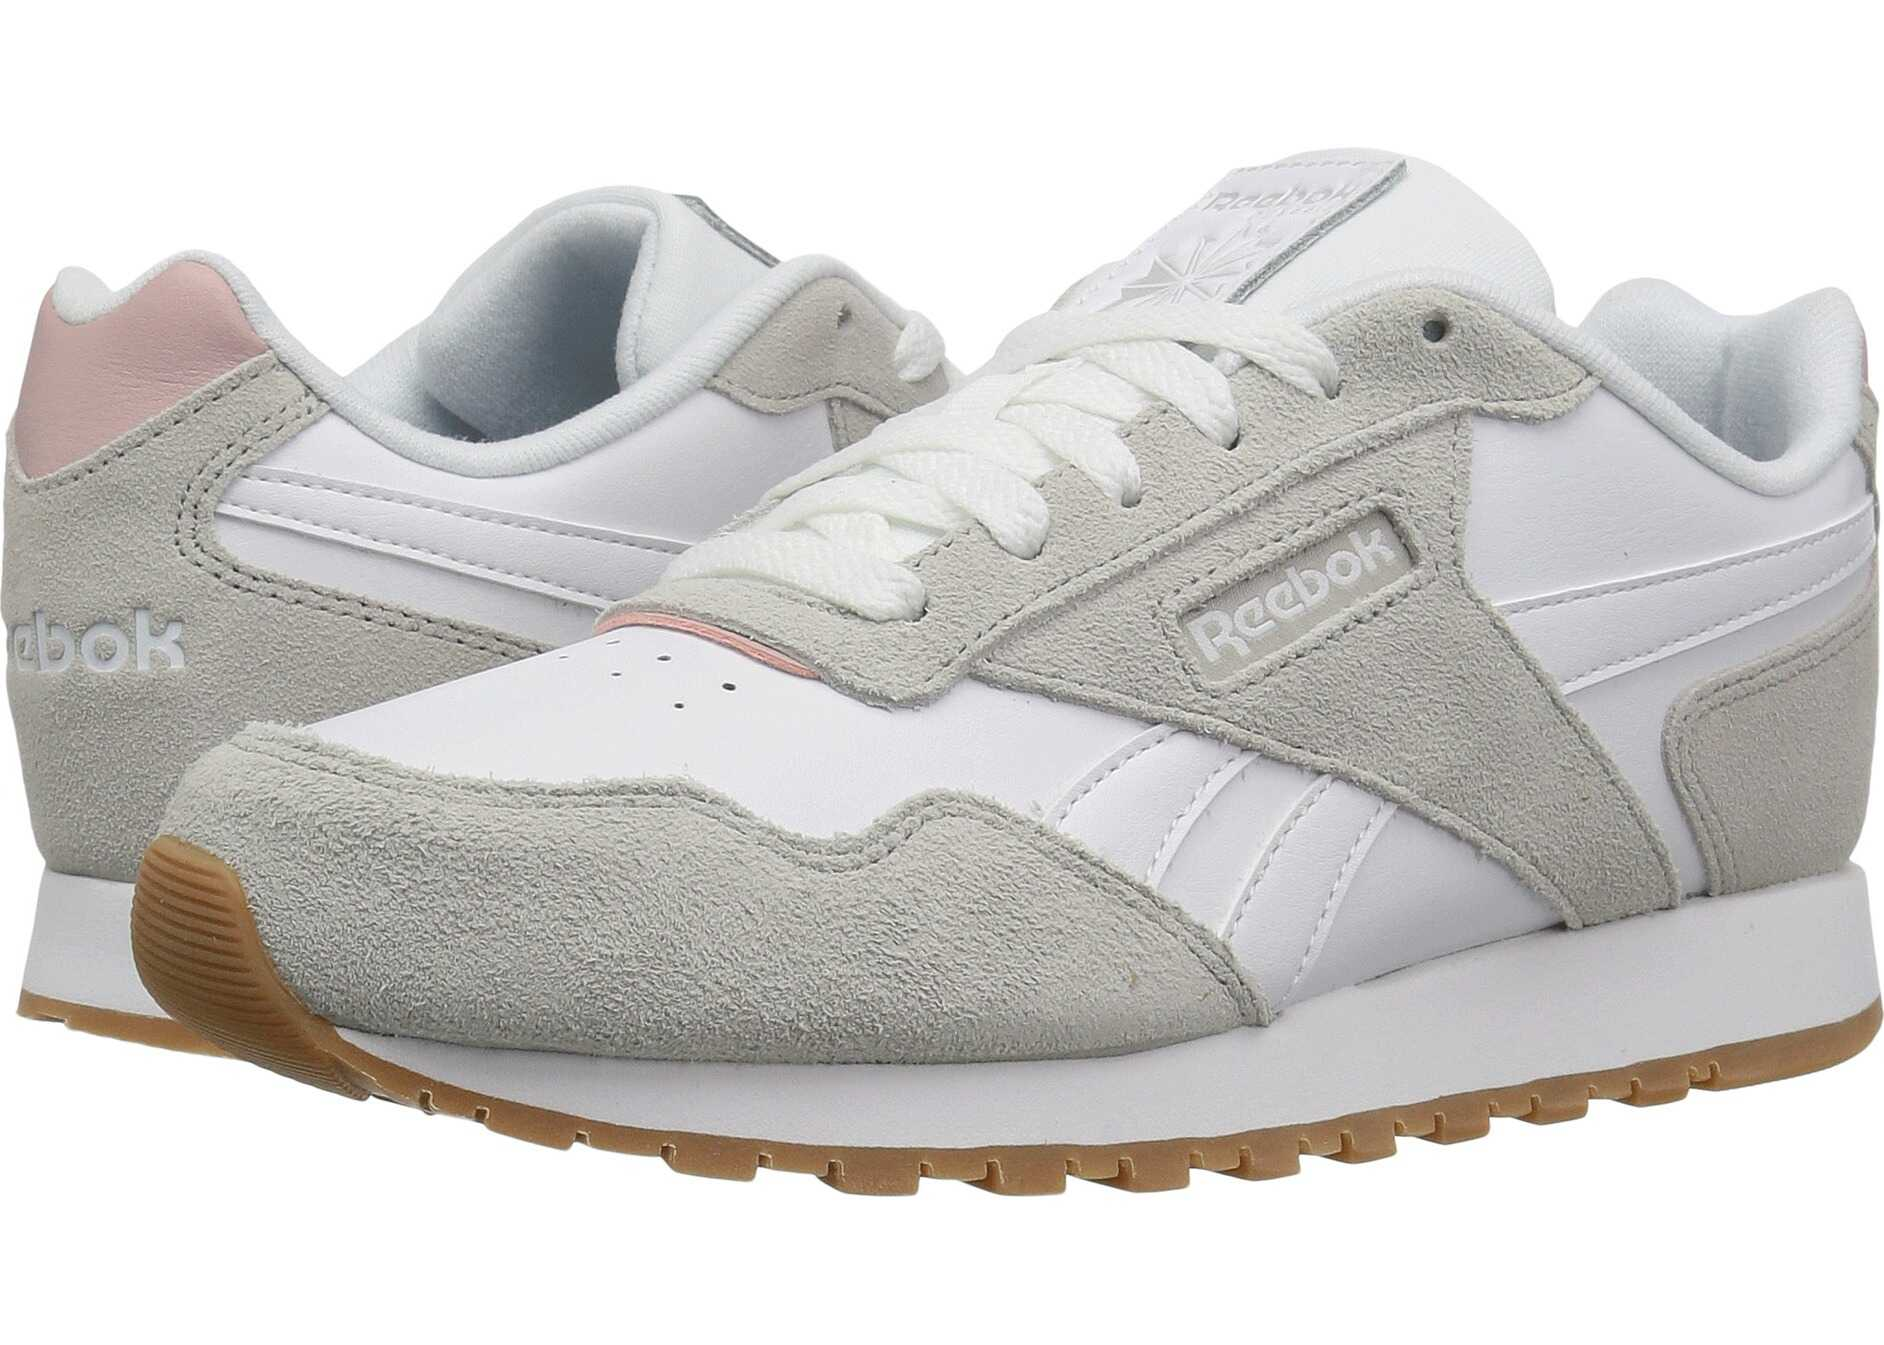 Reebok Classic Harman Run Steel/White/Shell Pink/Gum